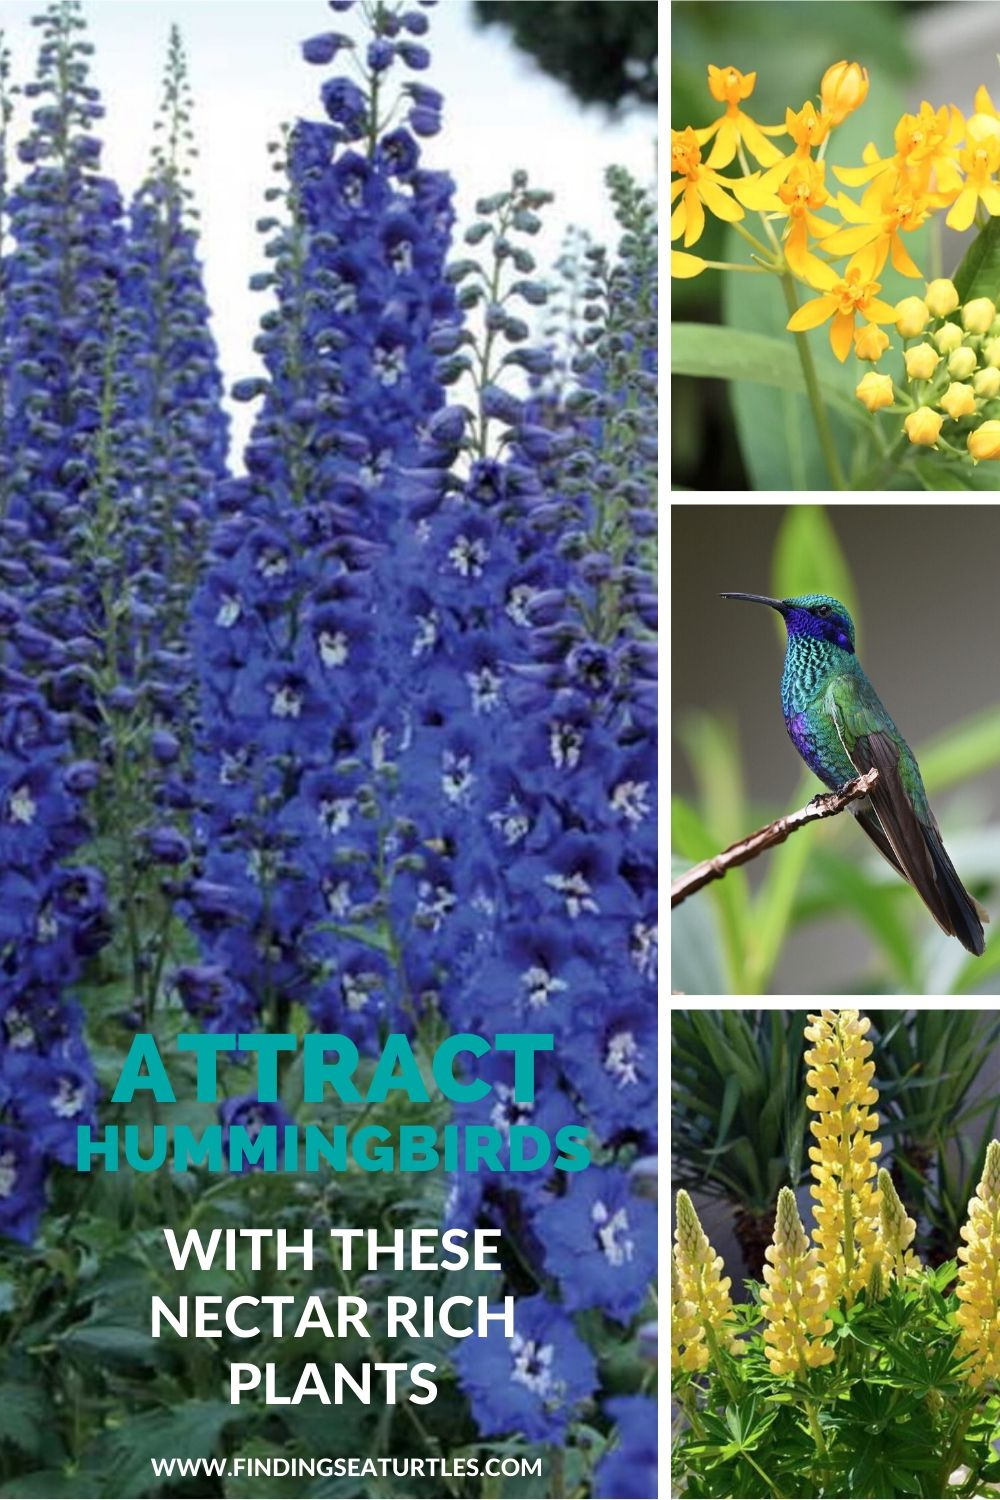 Attract Hummingbirds with these Nectar Rich Plants #Hummingbirds #Garden #Gardening #Plants #GardenPollinators #AttractHummingbirds #NectarRichPlants #BeneficialForPollinators